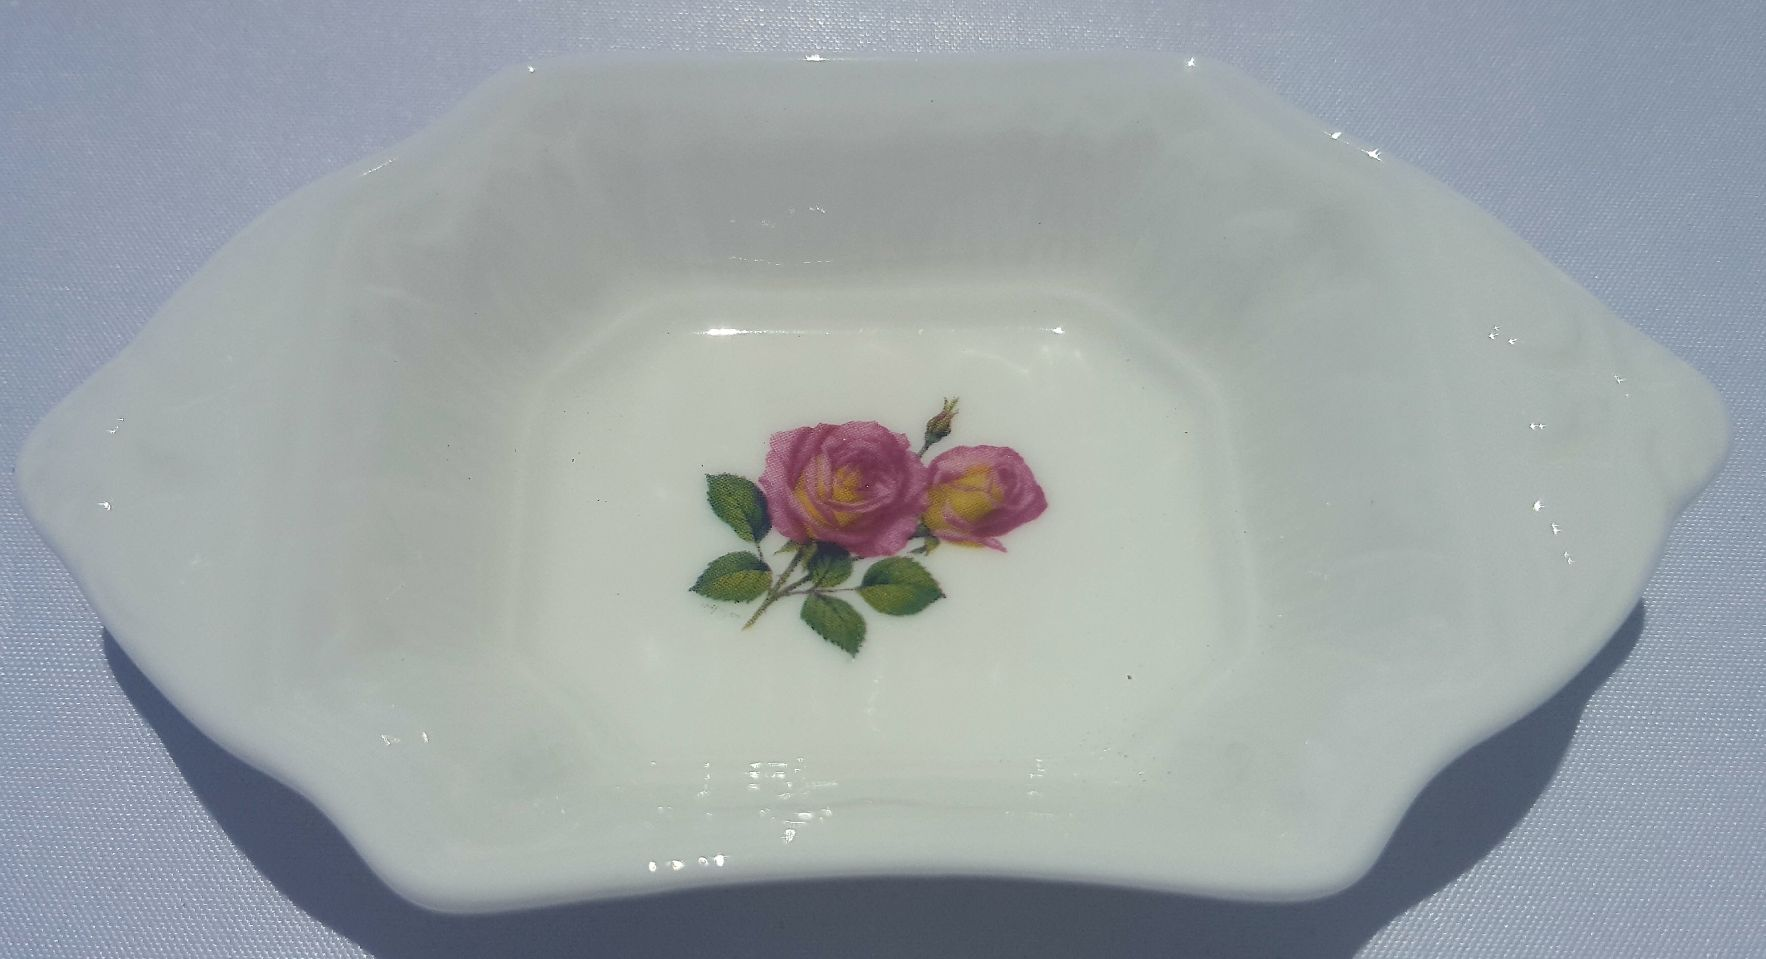 Blended Rose teadrip tray (Custom)